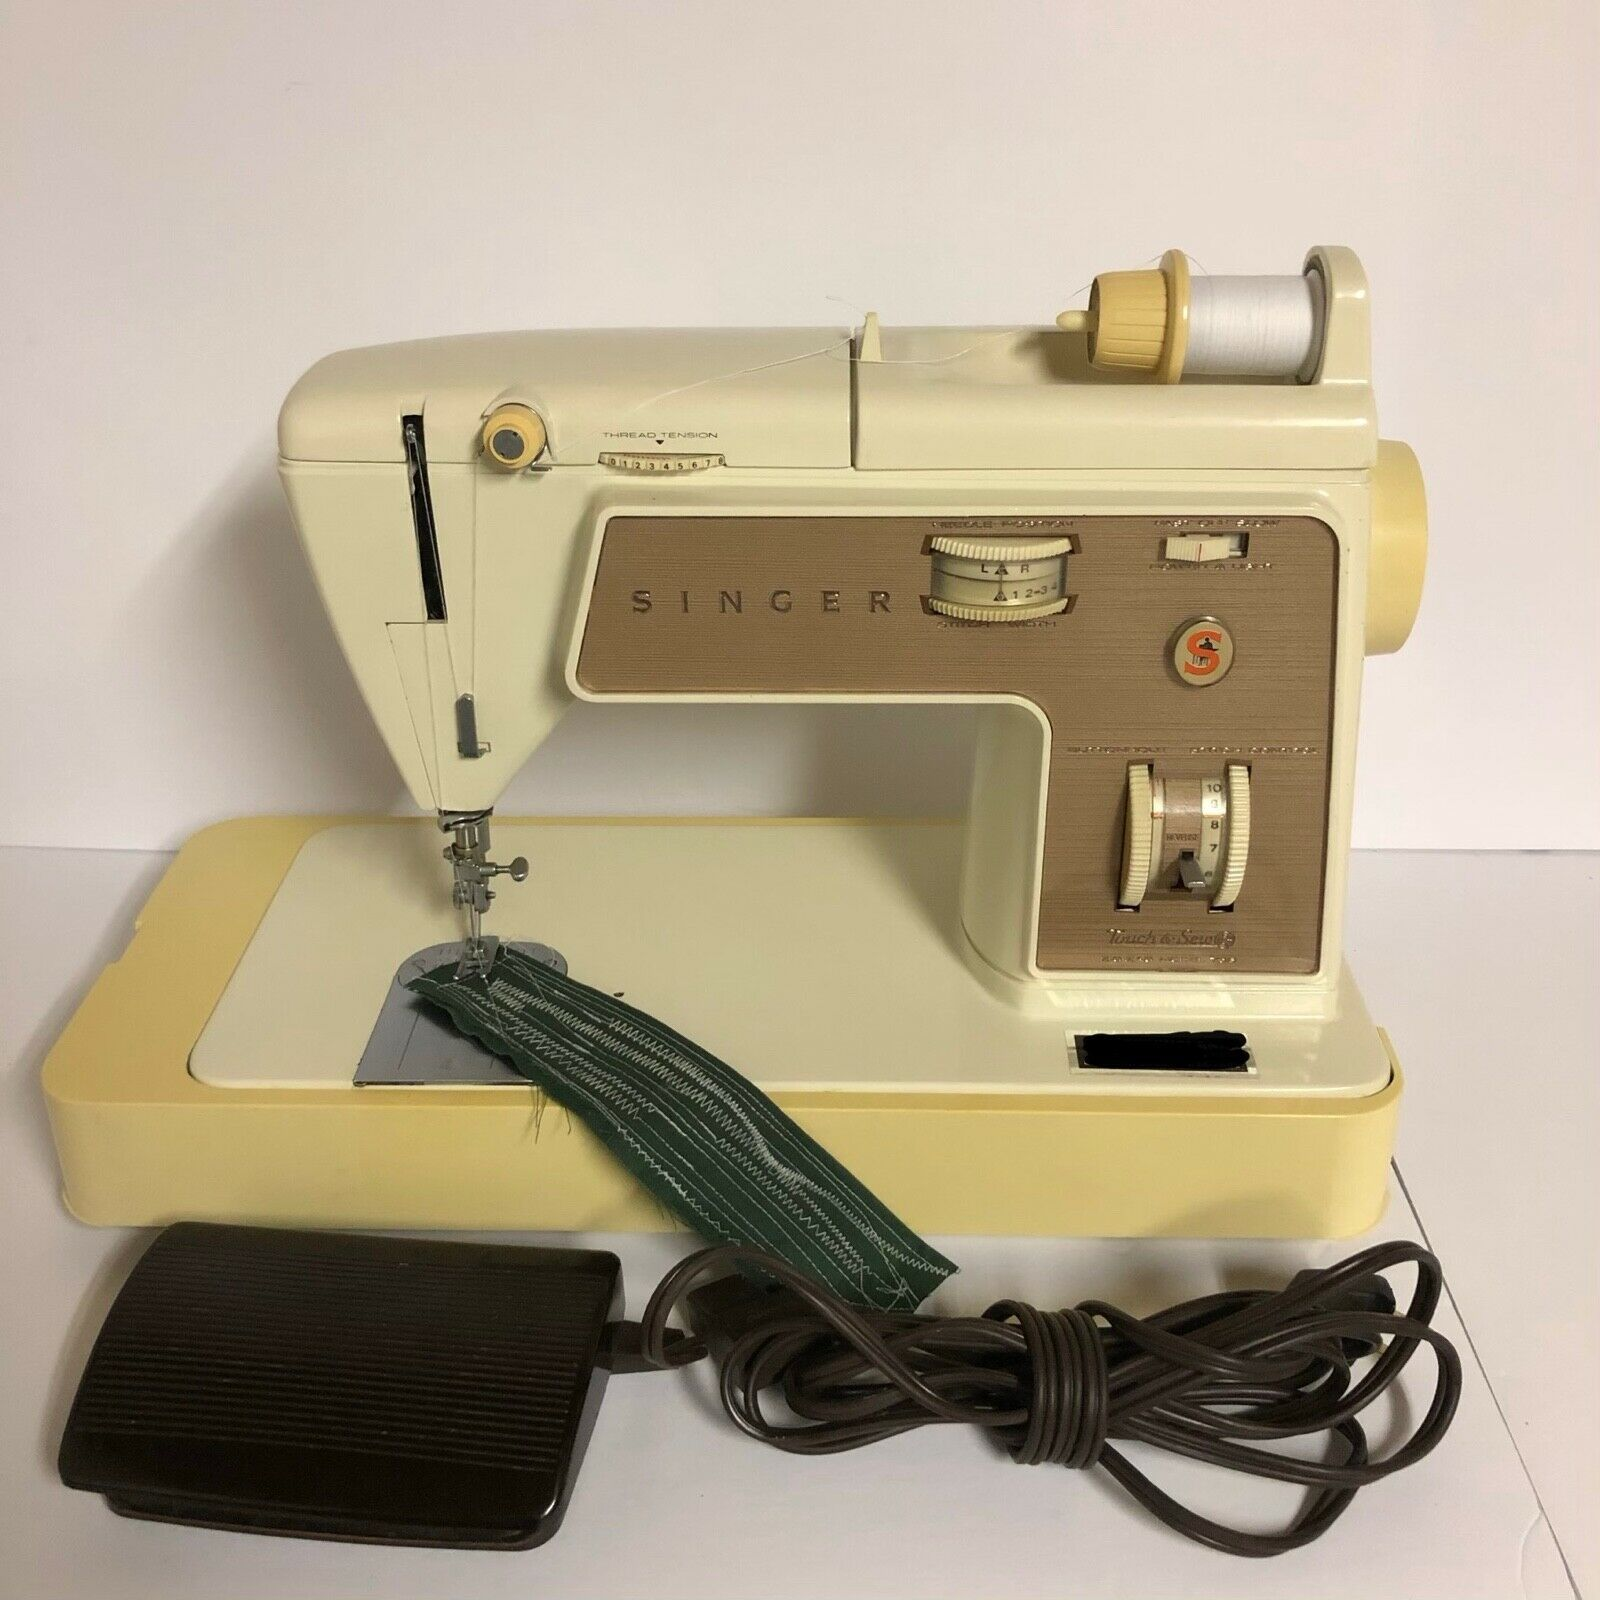 Singer Zig Zag 758 Touch-N-Sew Sewing Machine w/ Foot Pedal ~ Just Serviced GWC - $139.99